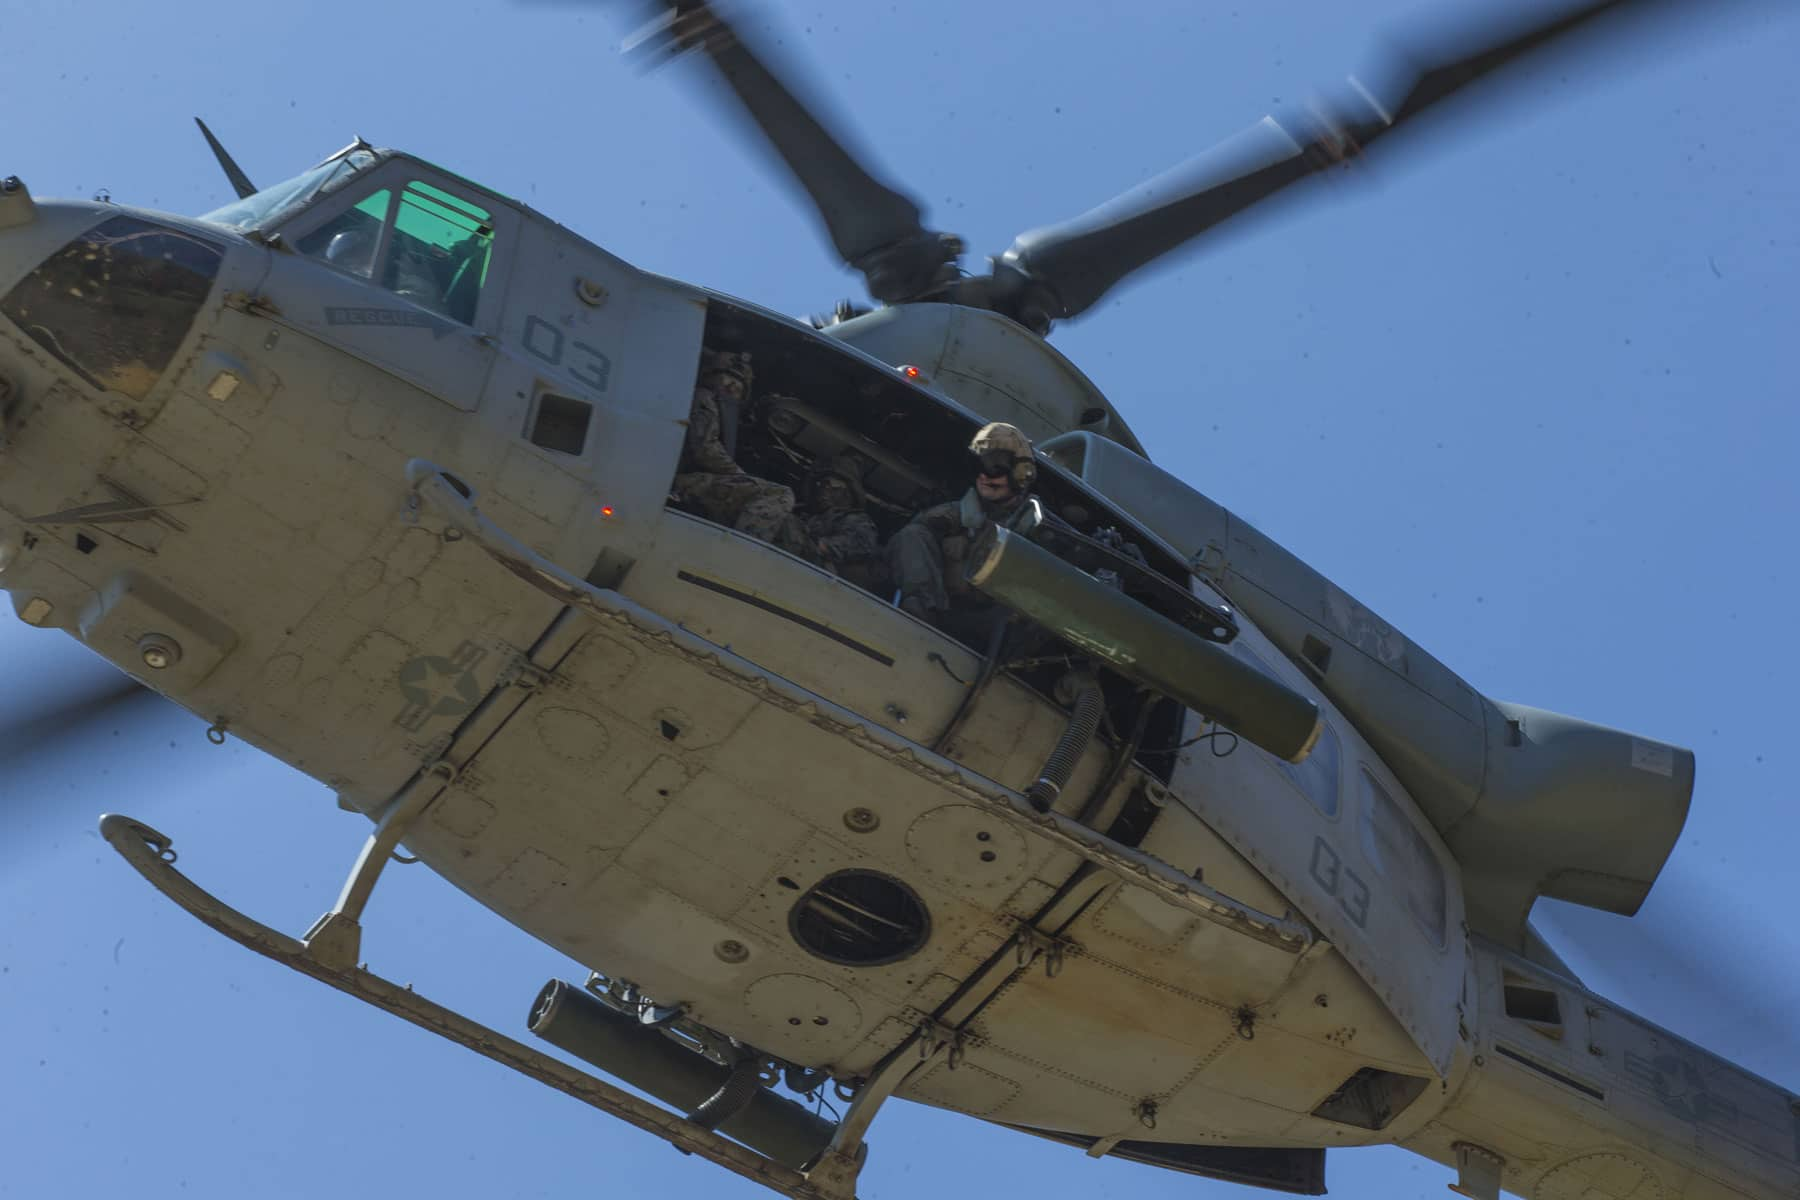 Marines with 1st Air Naval Gunfire Liaison Company (ANGLICO) prepare to rappel from a Bell UH-1 Iroquois on Camp Pendleton, California. 1st ANGLICO is conducting training to prepare Marines for future deployments.